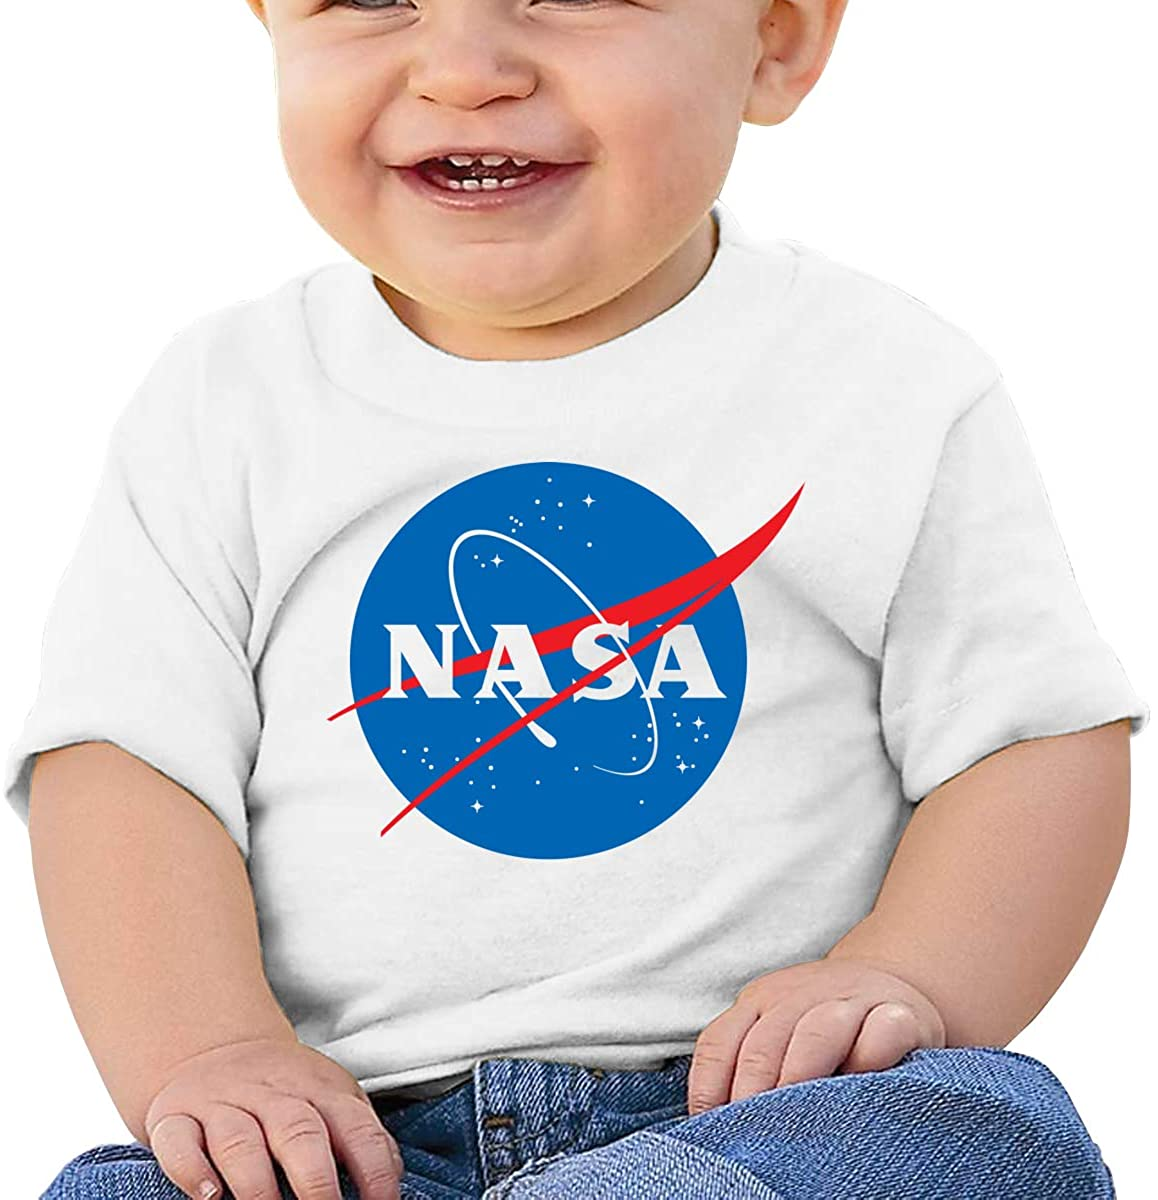 Gbyuhjbujhhjnuj Baby T-Shirt Cute Infant Home NASA Graphic Toddler T Boys and Girls Soft Short Sleeve Cotton Kids Shirt